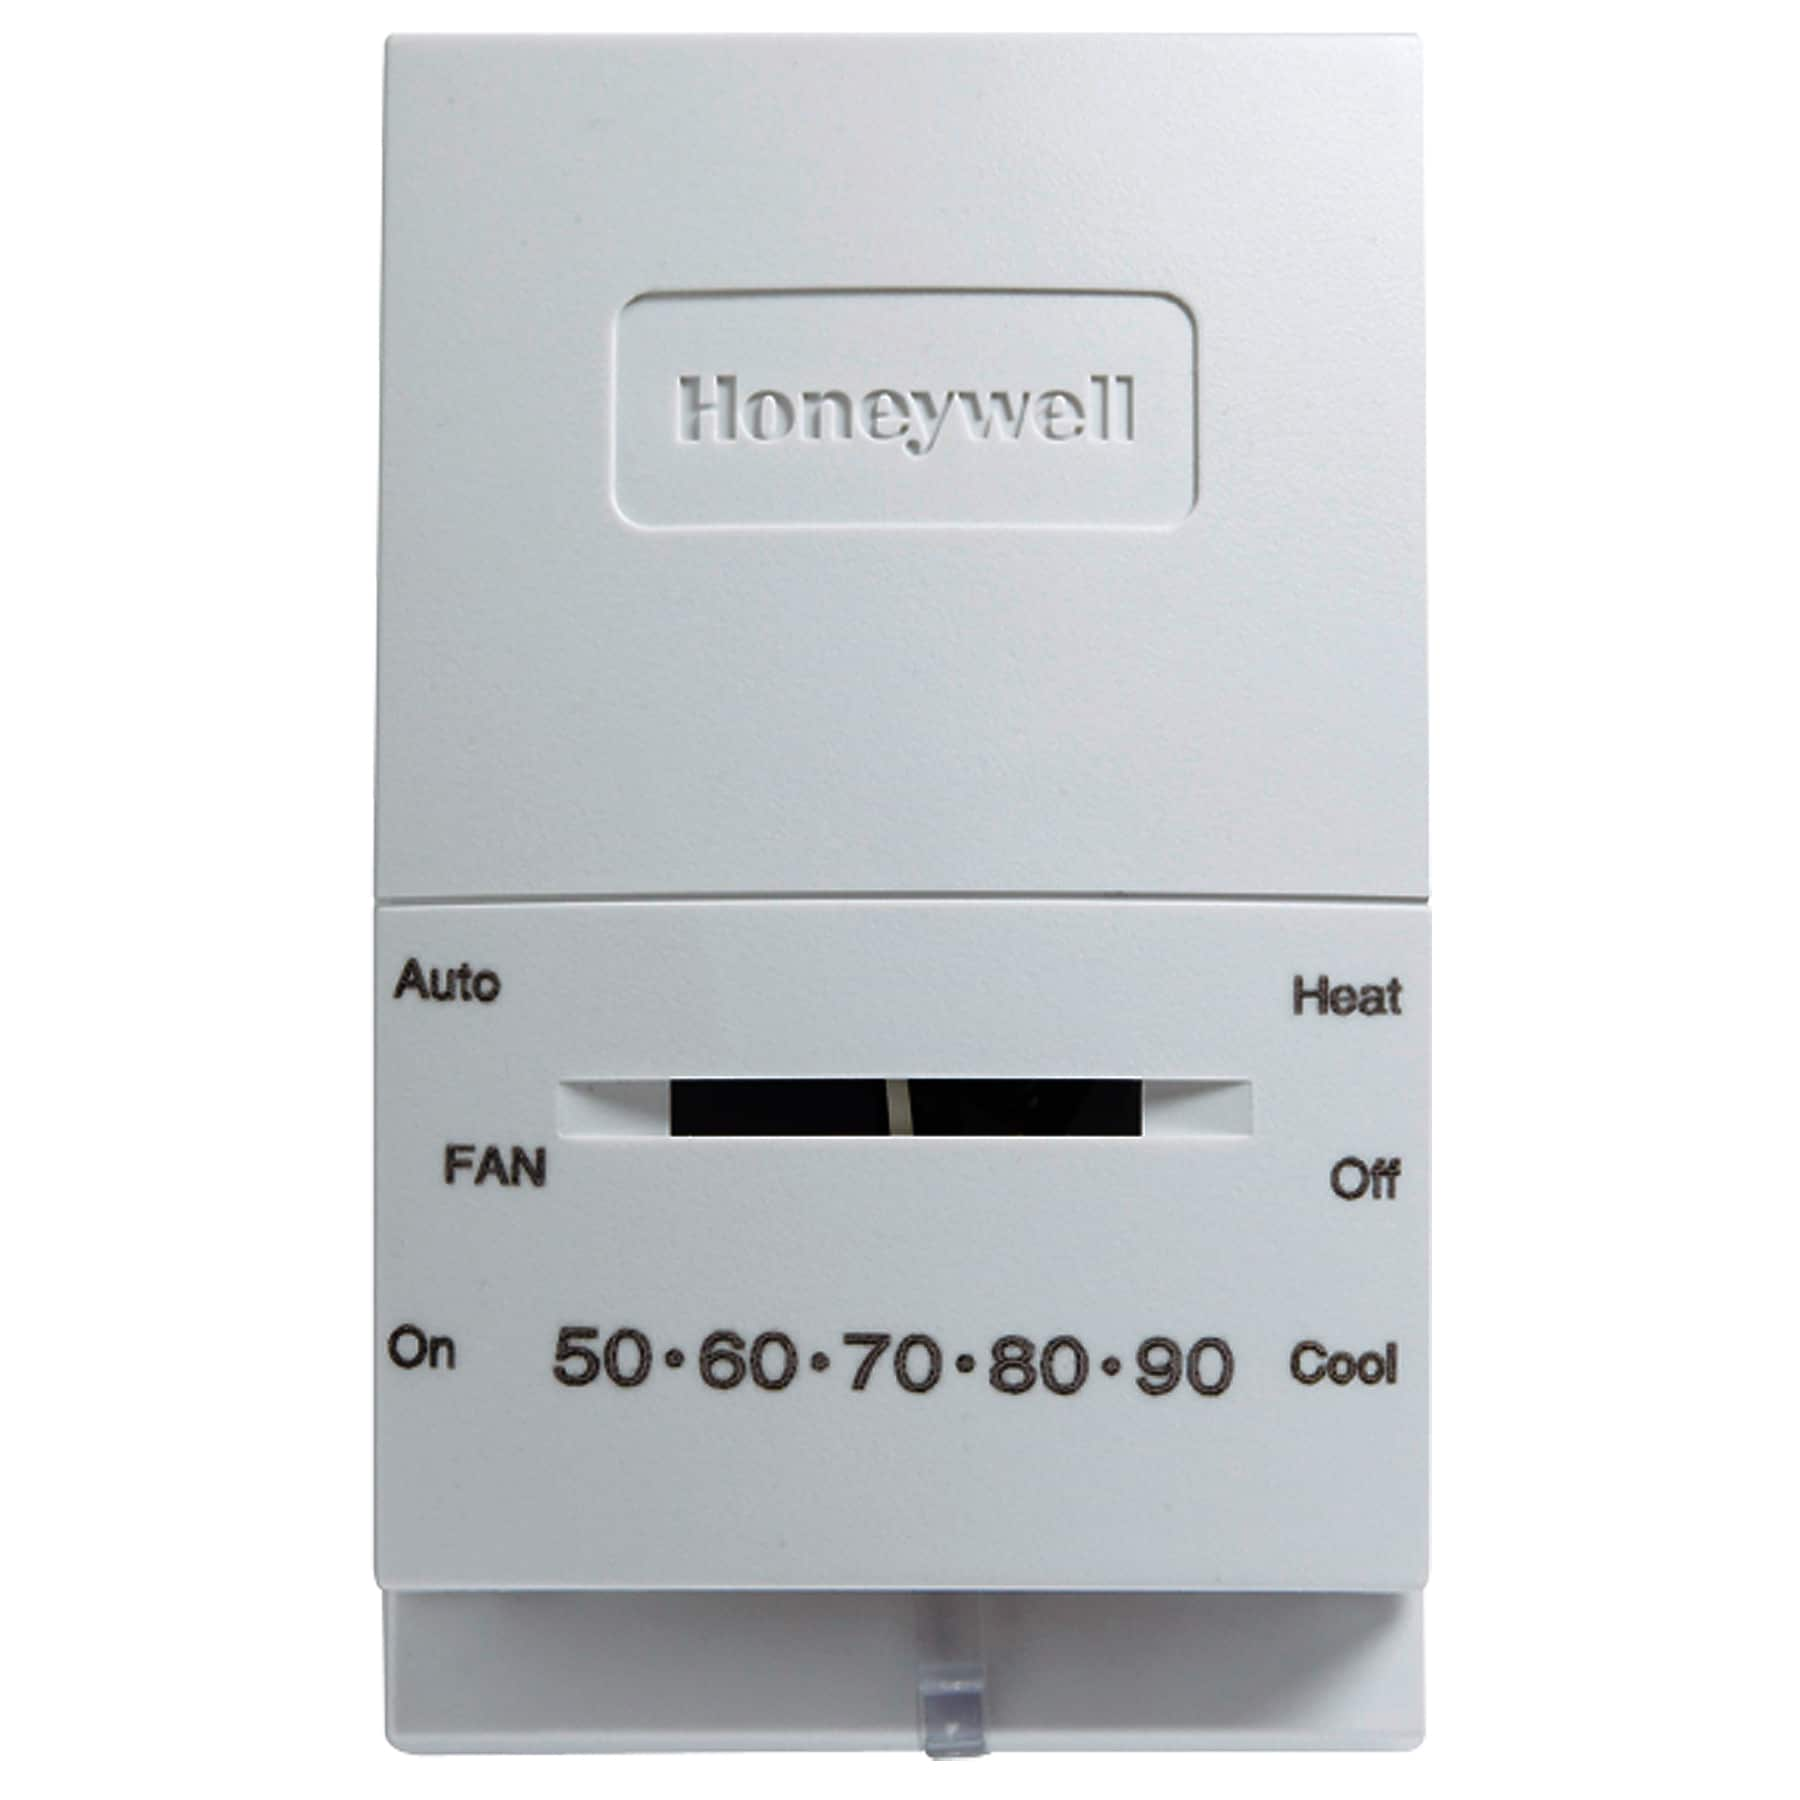 Honeywell YCT51N1008/U Manual Heat & Cool Thermostat (The...